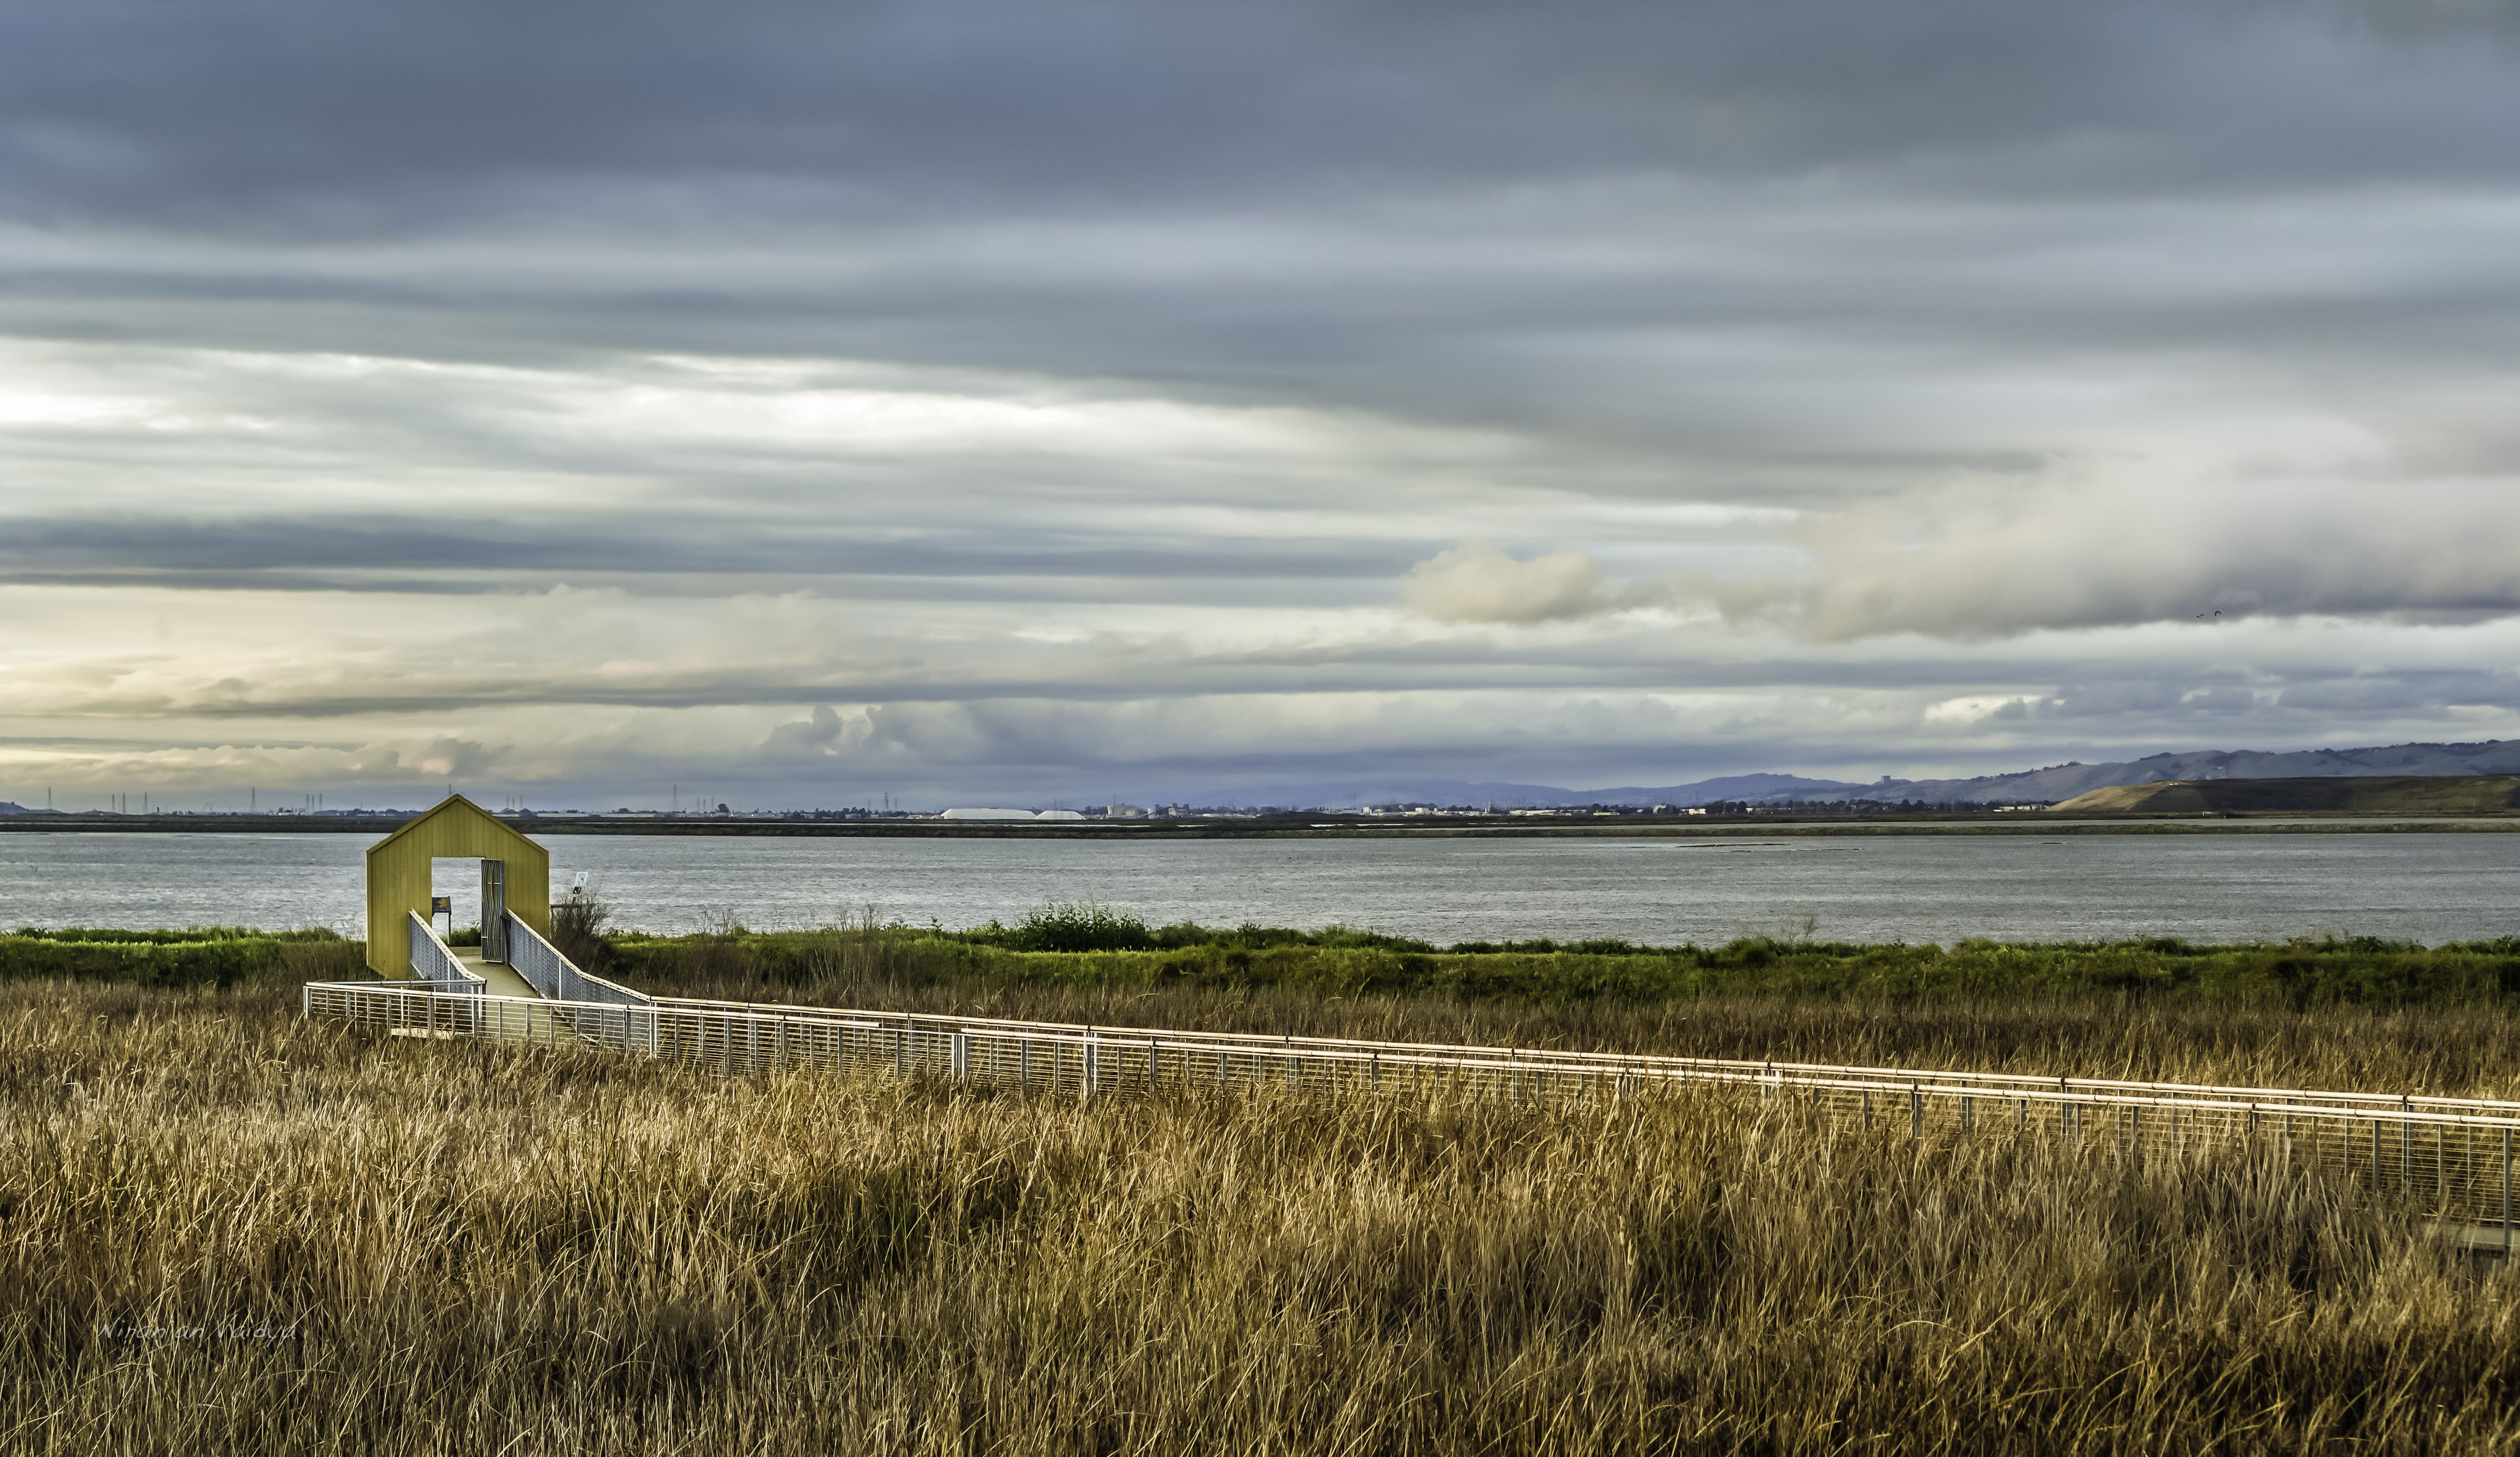 Alviso_Marina_County_Park_View_At_Sunset.jpg